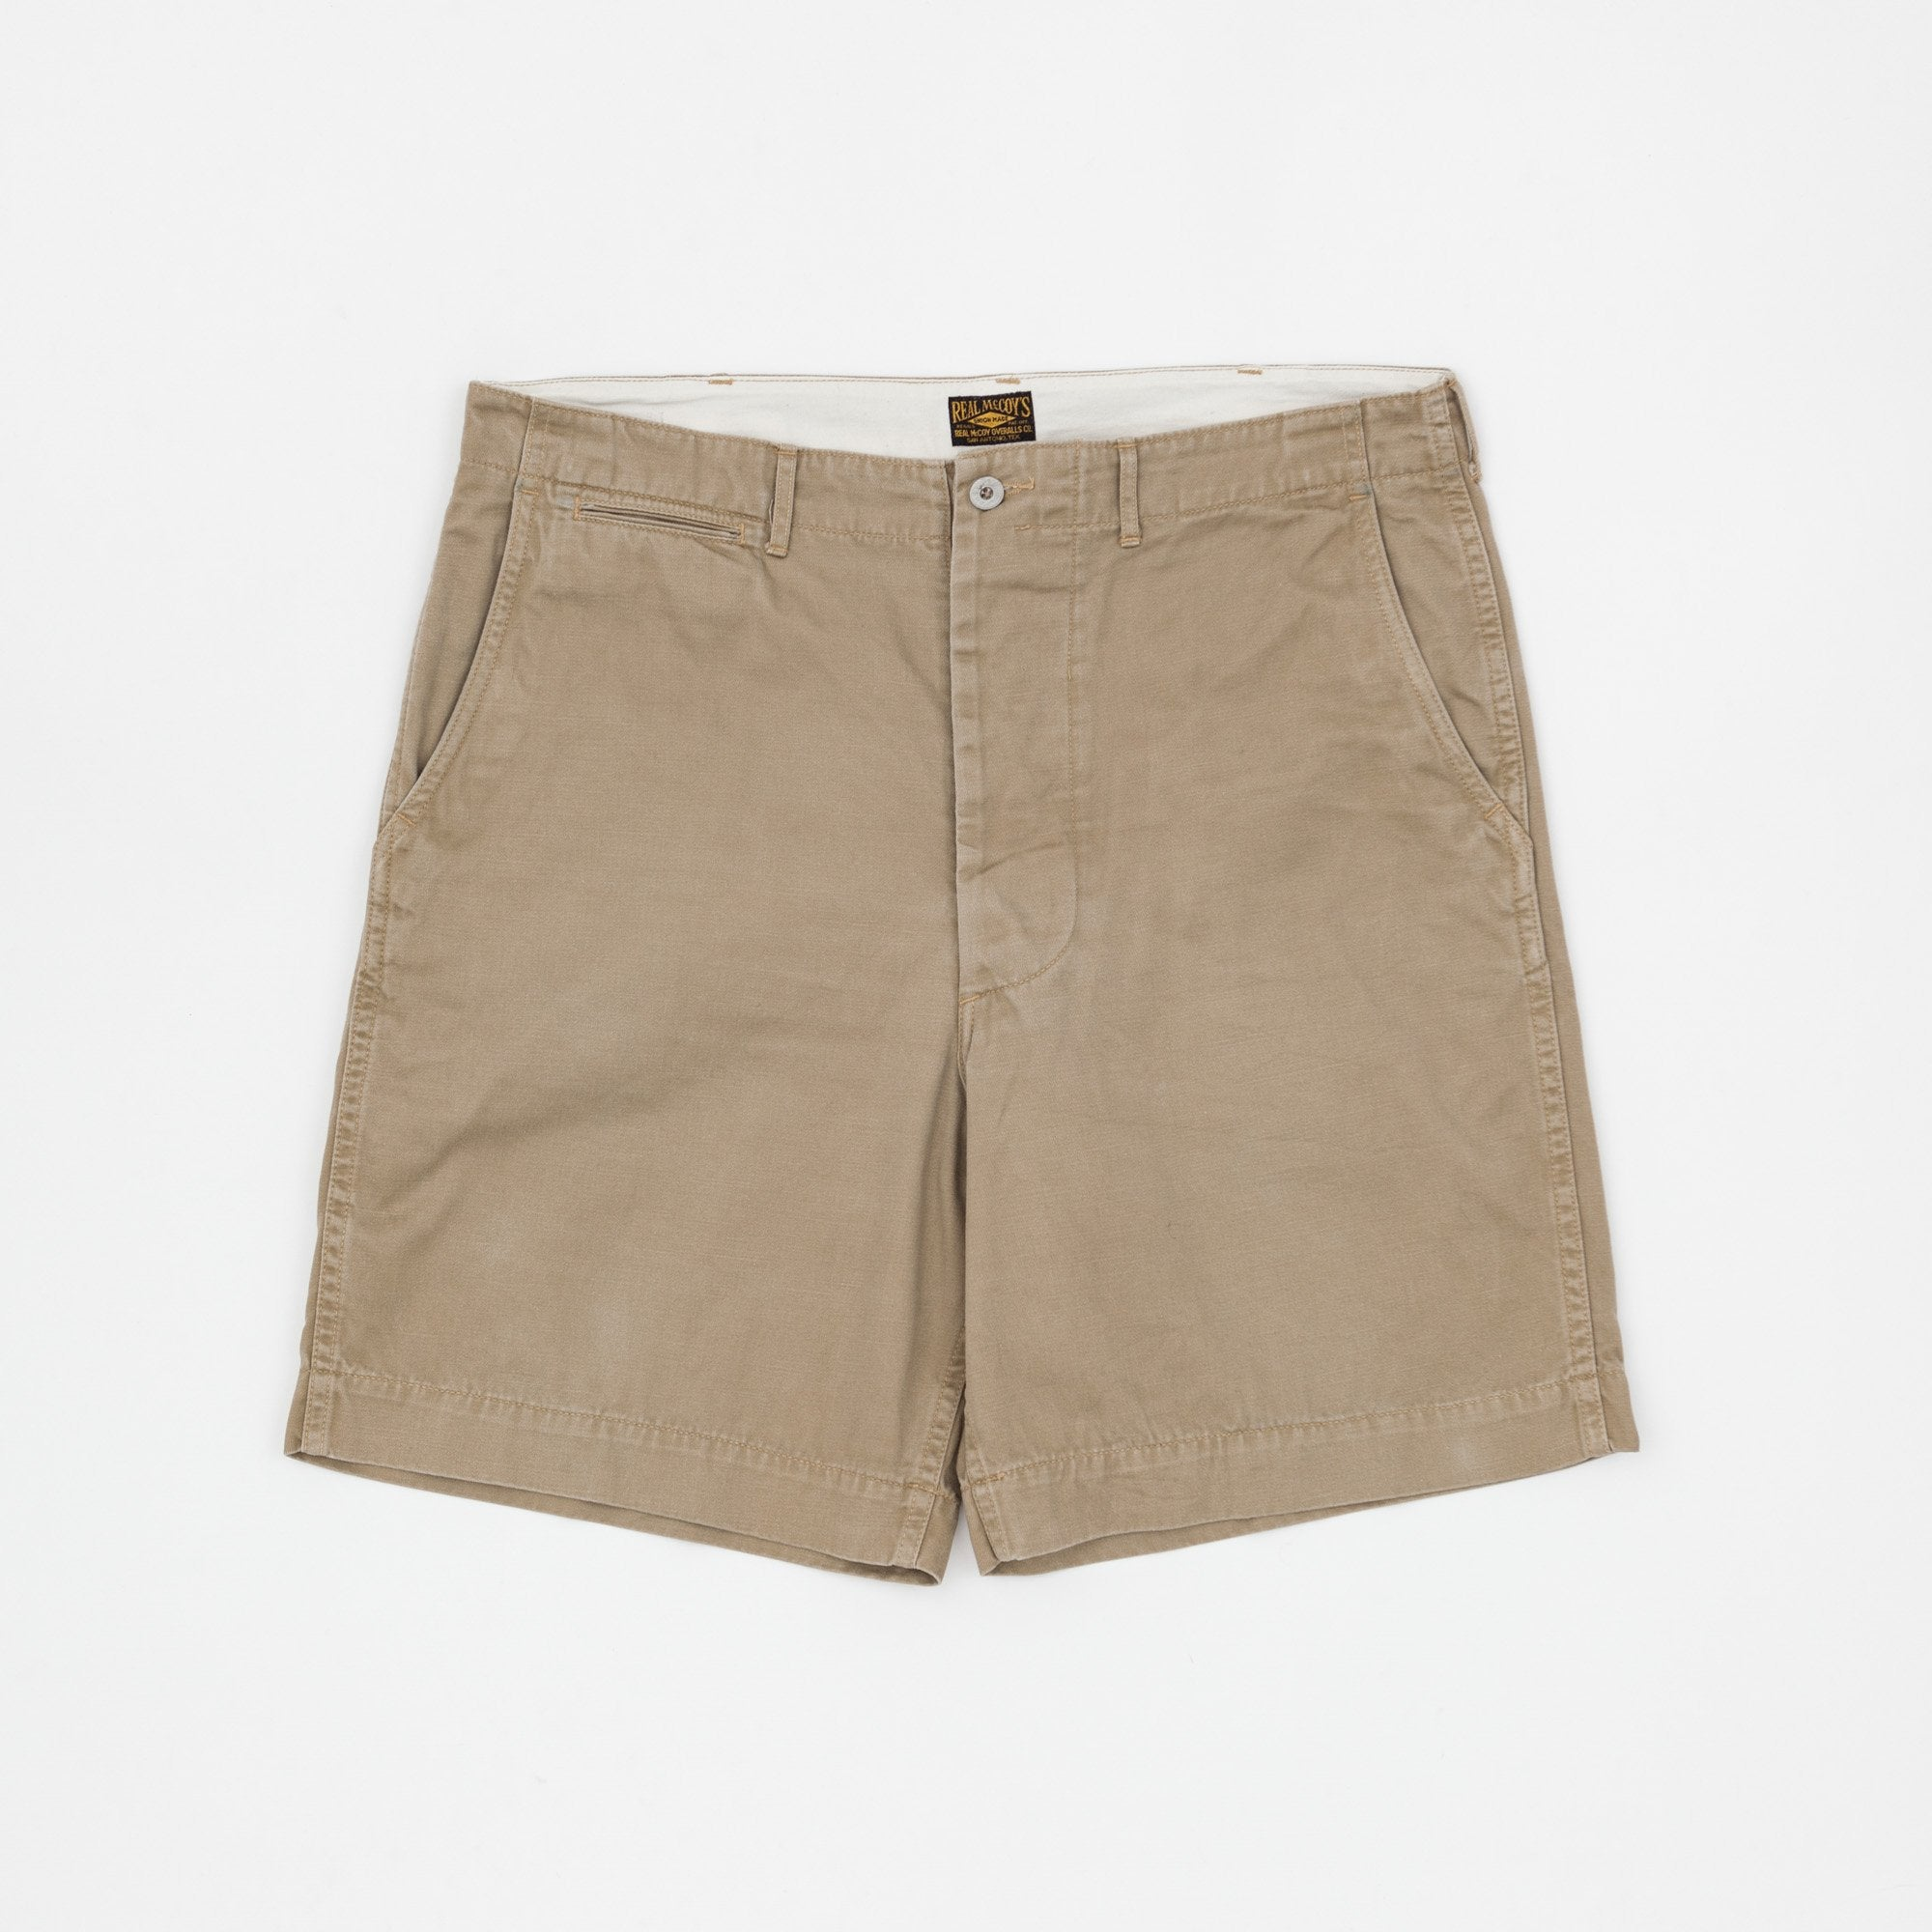 The Real McCoy's U.S. Army Khaki Shorts